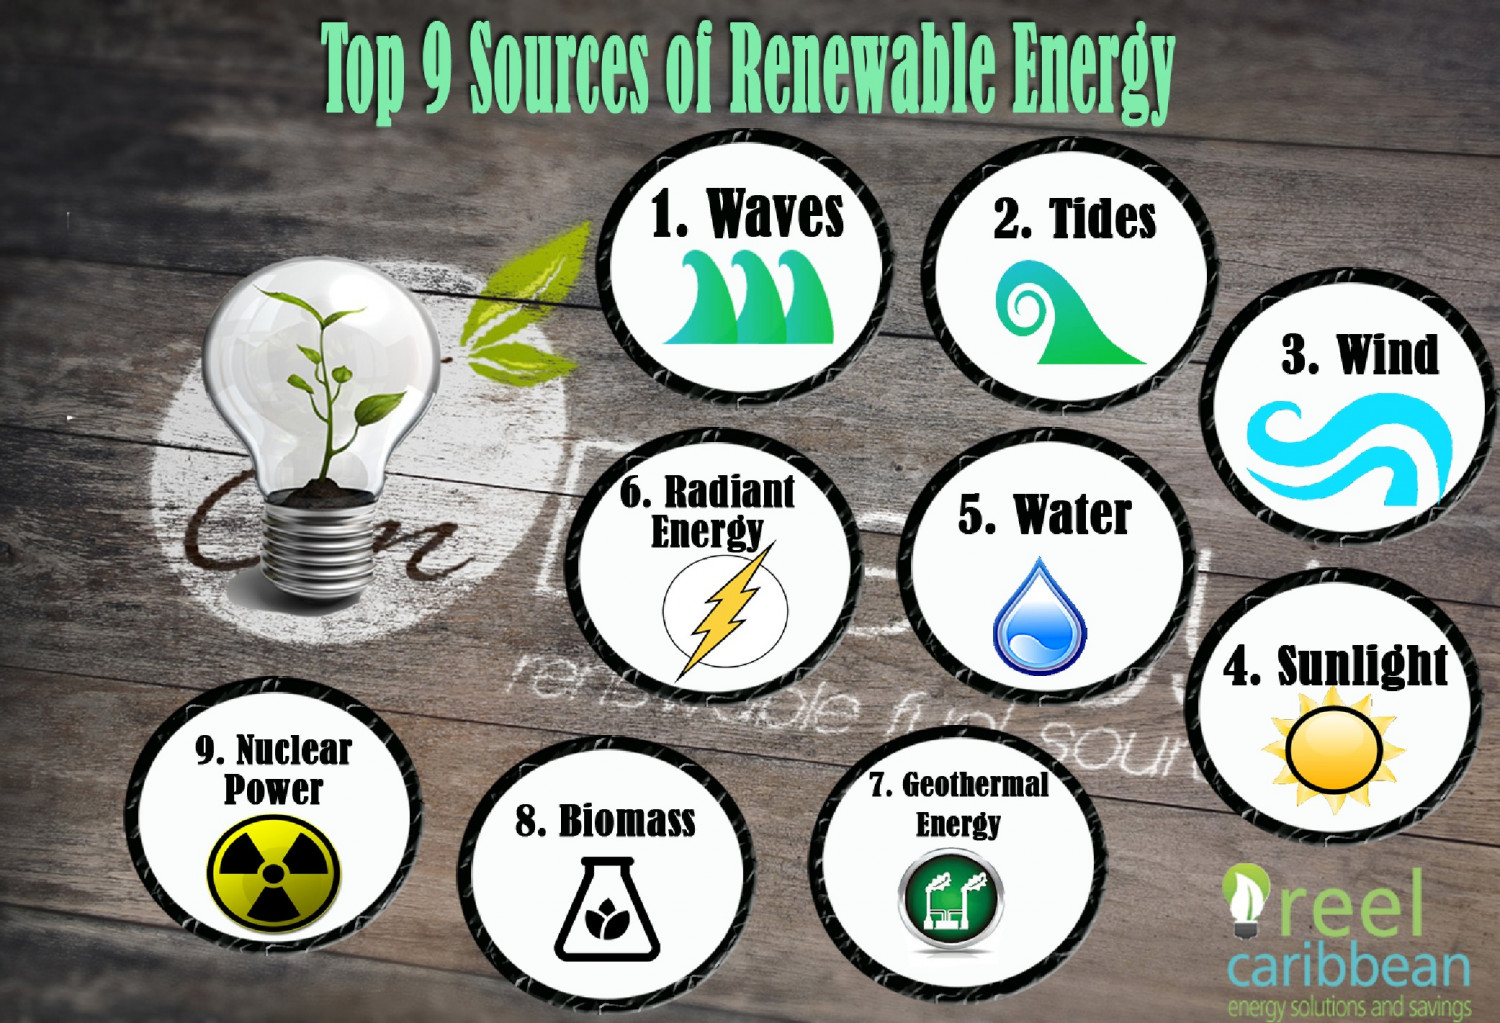 Top 9 Sources of Renewable Energy Infographic